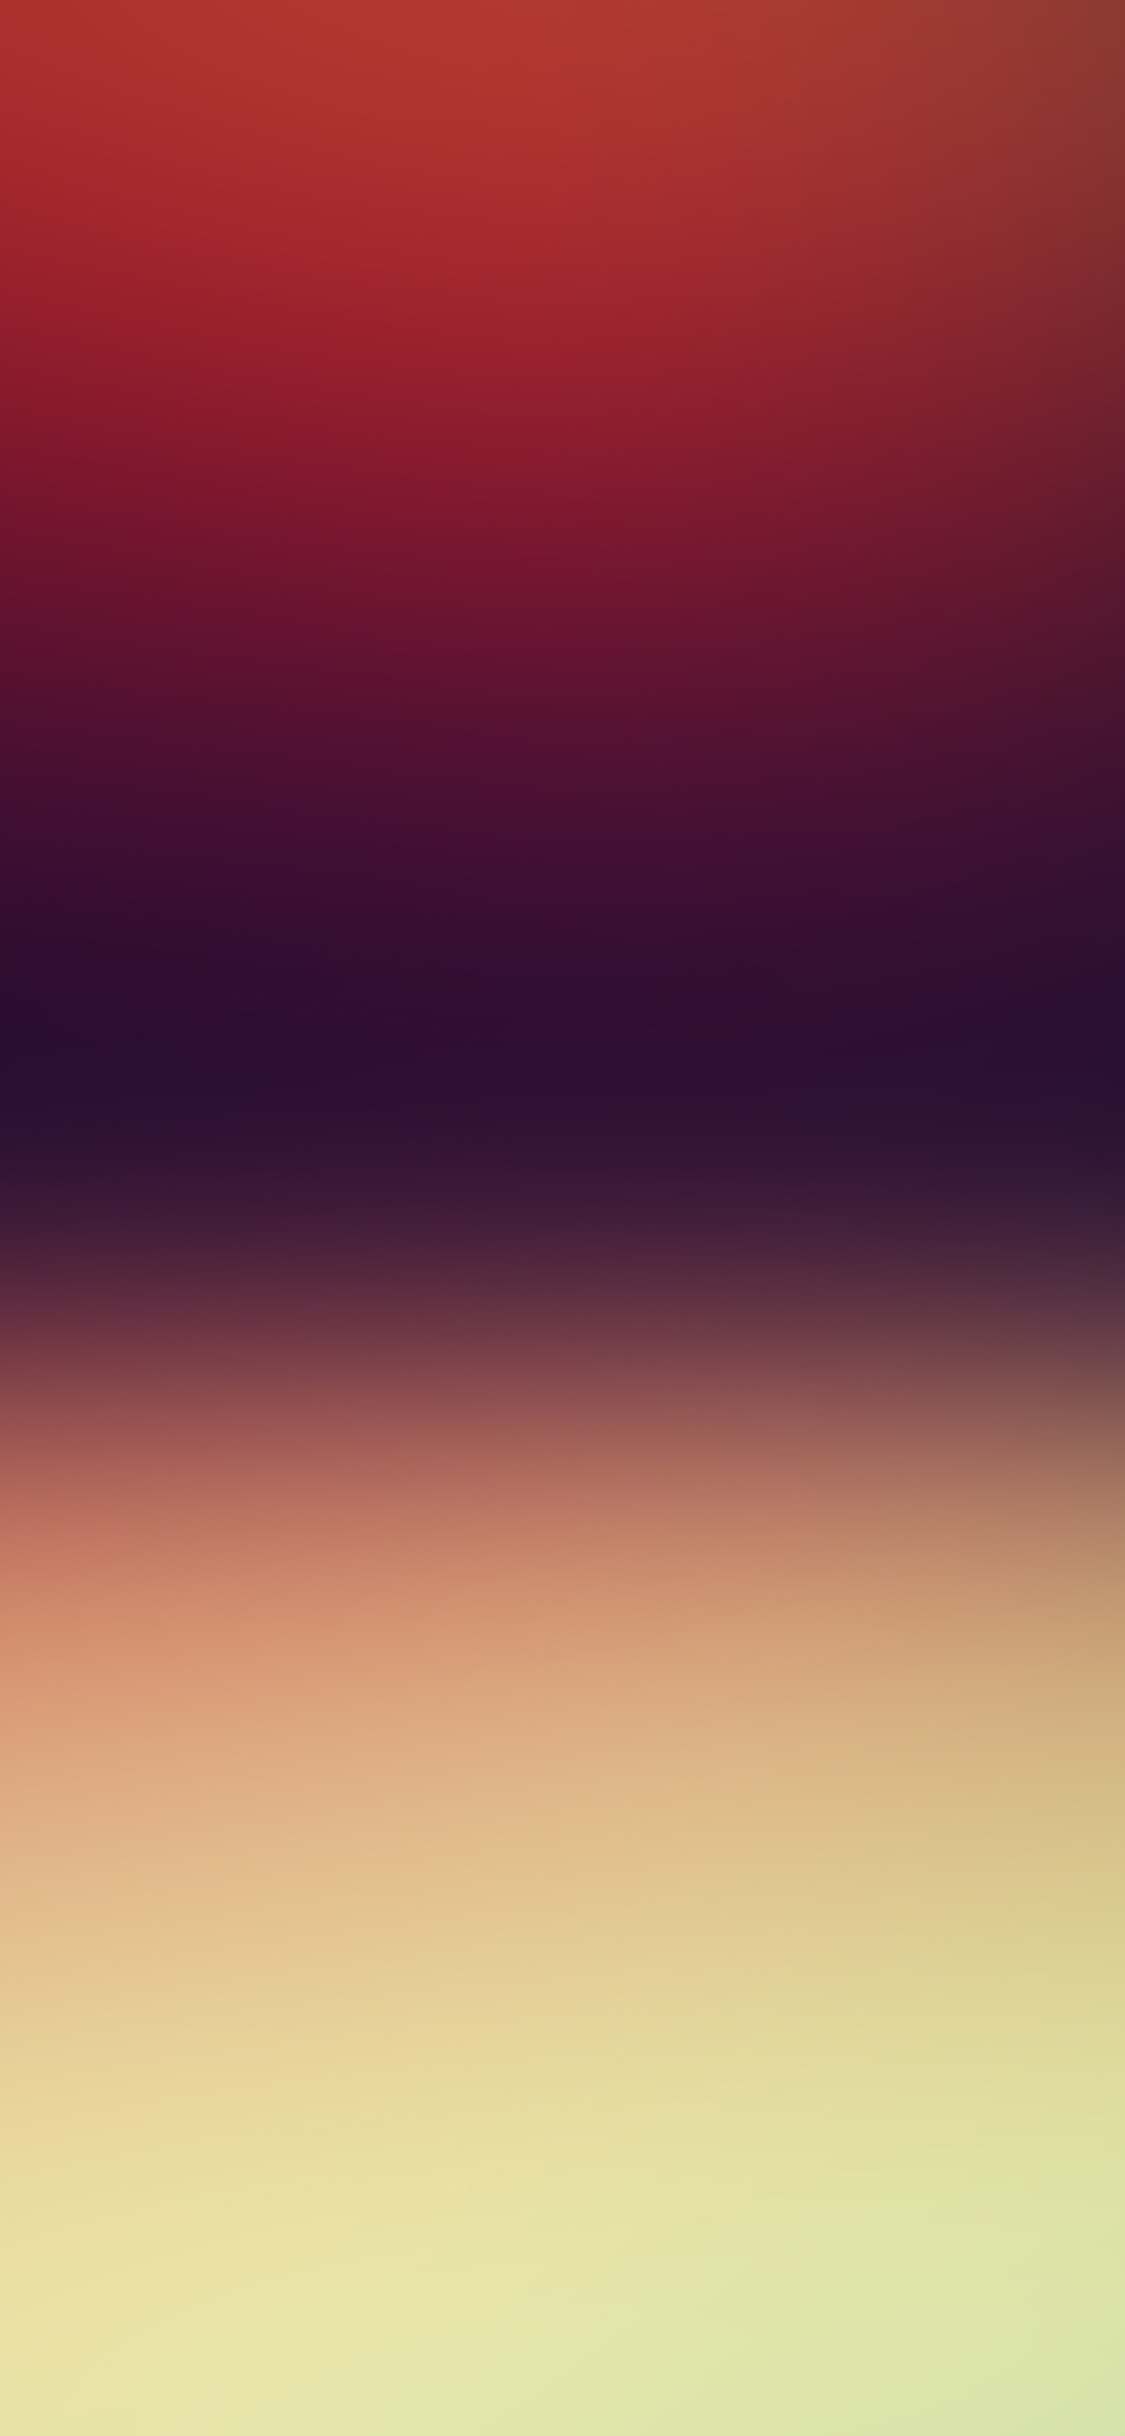 iPhoneXpapers.com-Apple-iPhone-wallpaper-sh95-purple-sea-red-gradation-blur